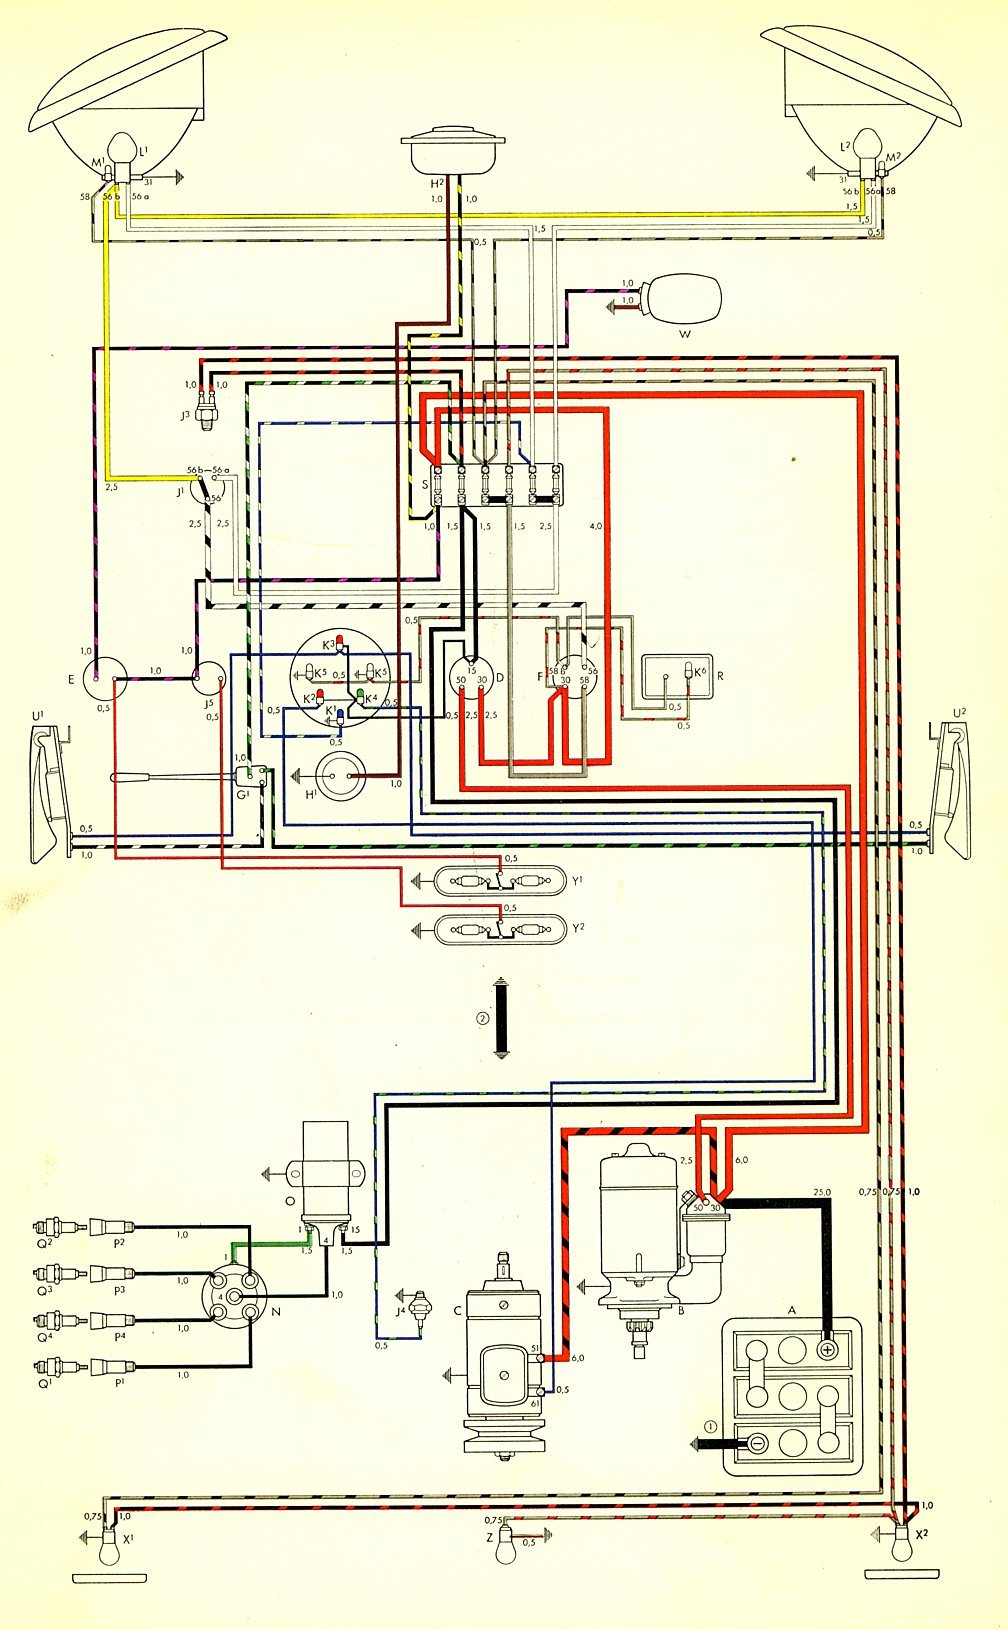 bus_59 bus wiring diagram vw wiring harness diagram \u2022 wiring diagrams j 1971 vw bus wiring diagram at bayanpartner.co